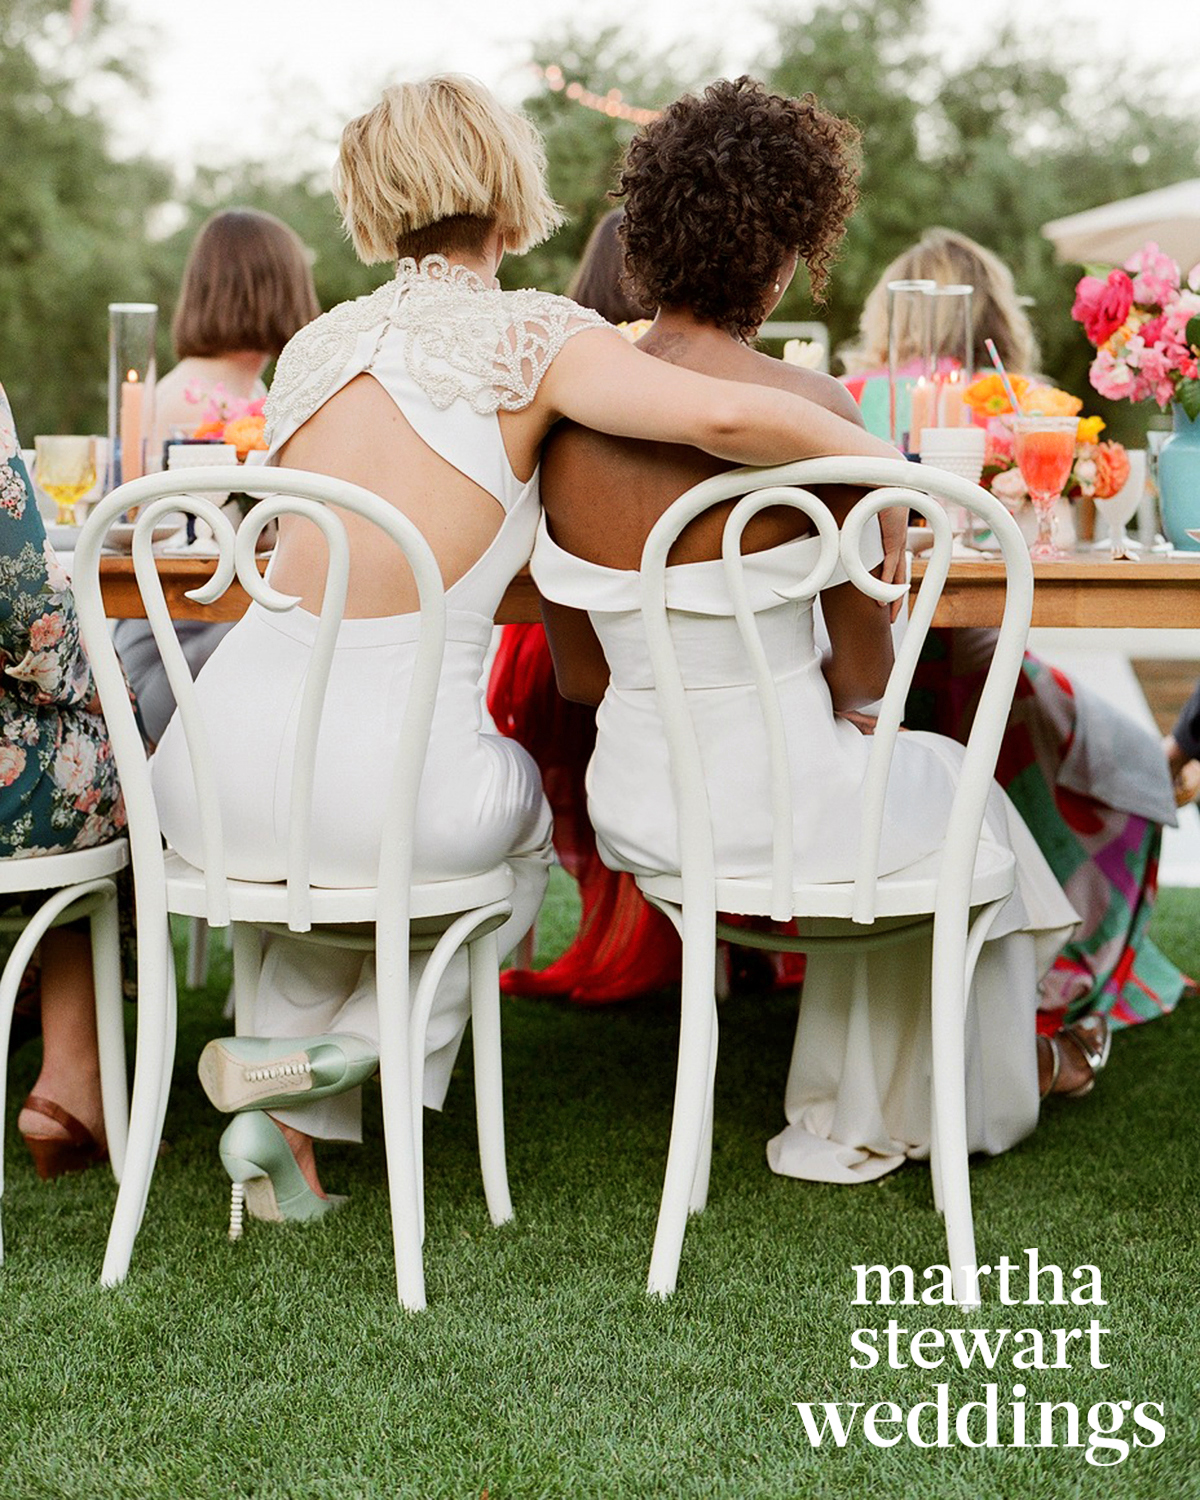 samira wiley lauren morelli wedding toasts